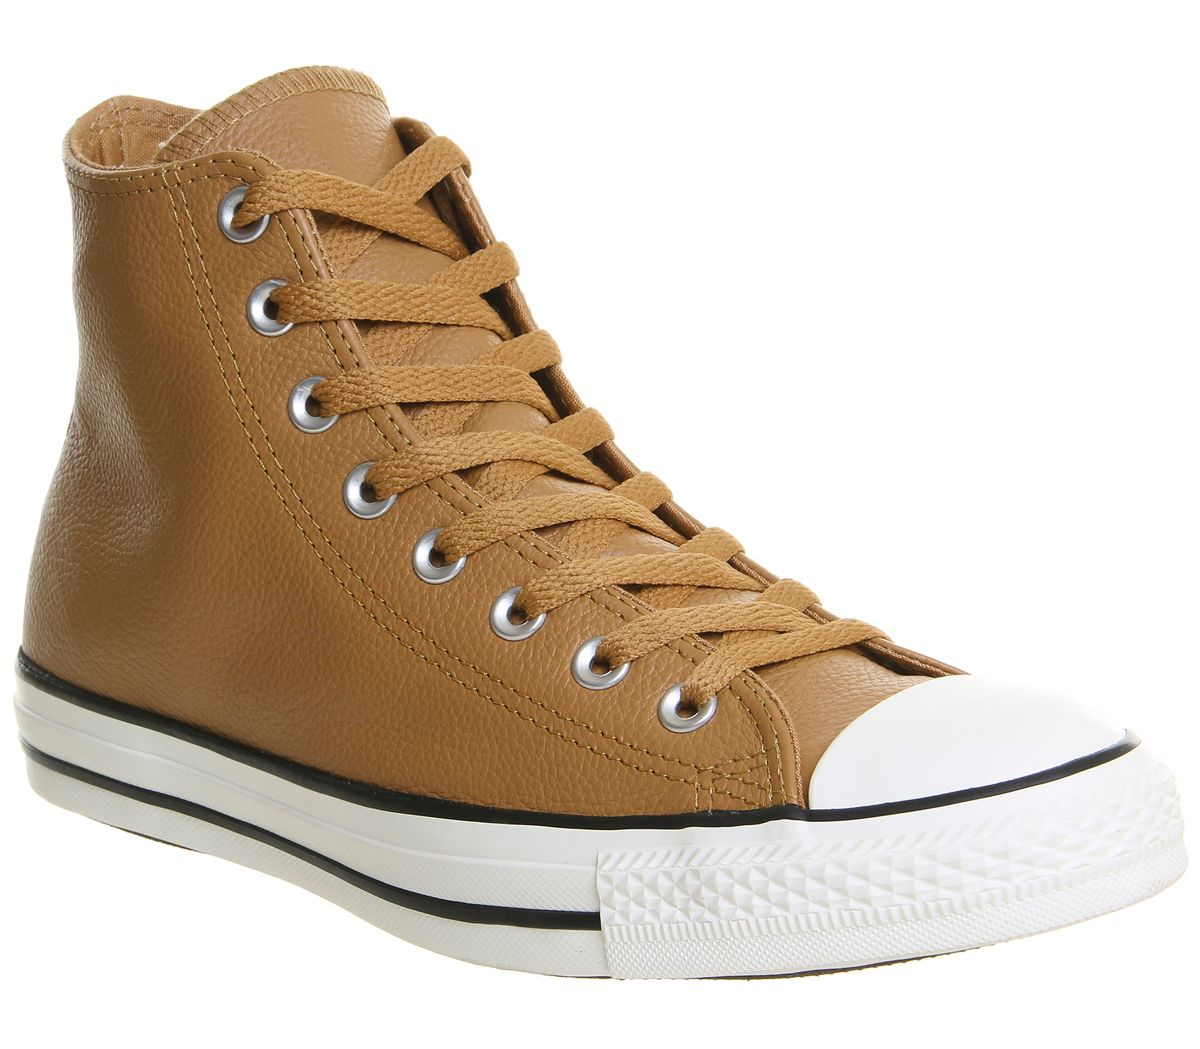 Converse Converse All Star High Leather Trainers, White